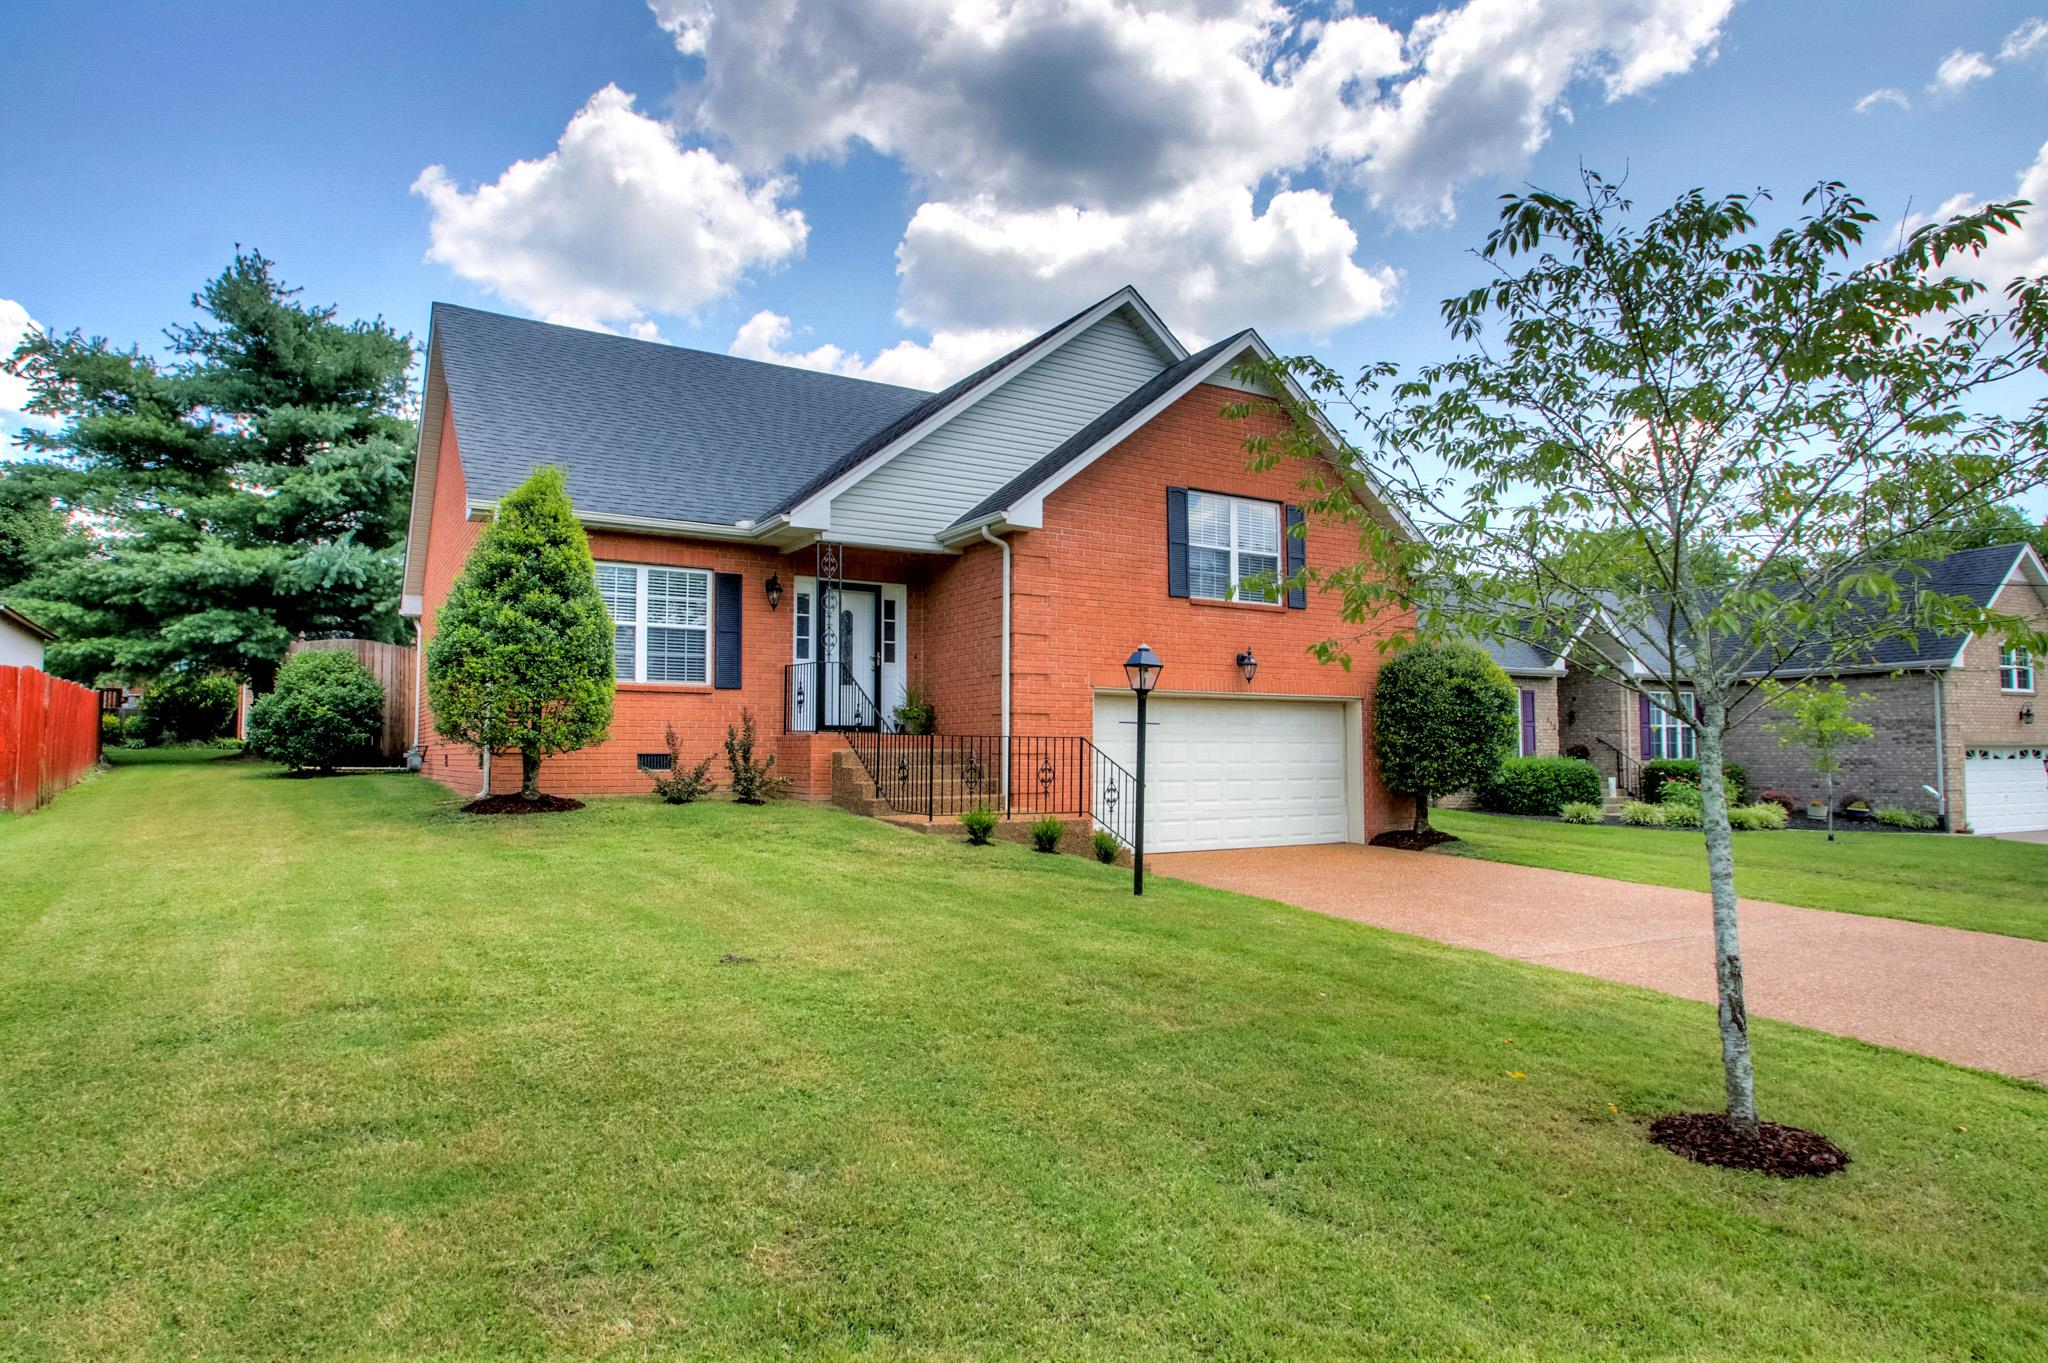 310 Jackson Rd, Goodlettsville, TN 37072 - Goodlettsville, TN real estate listing